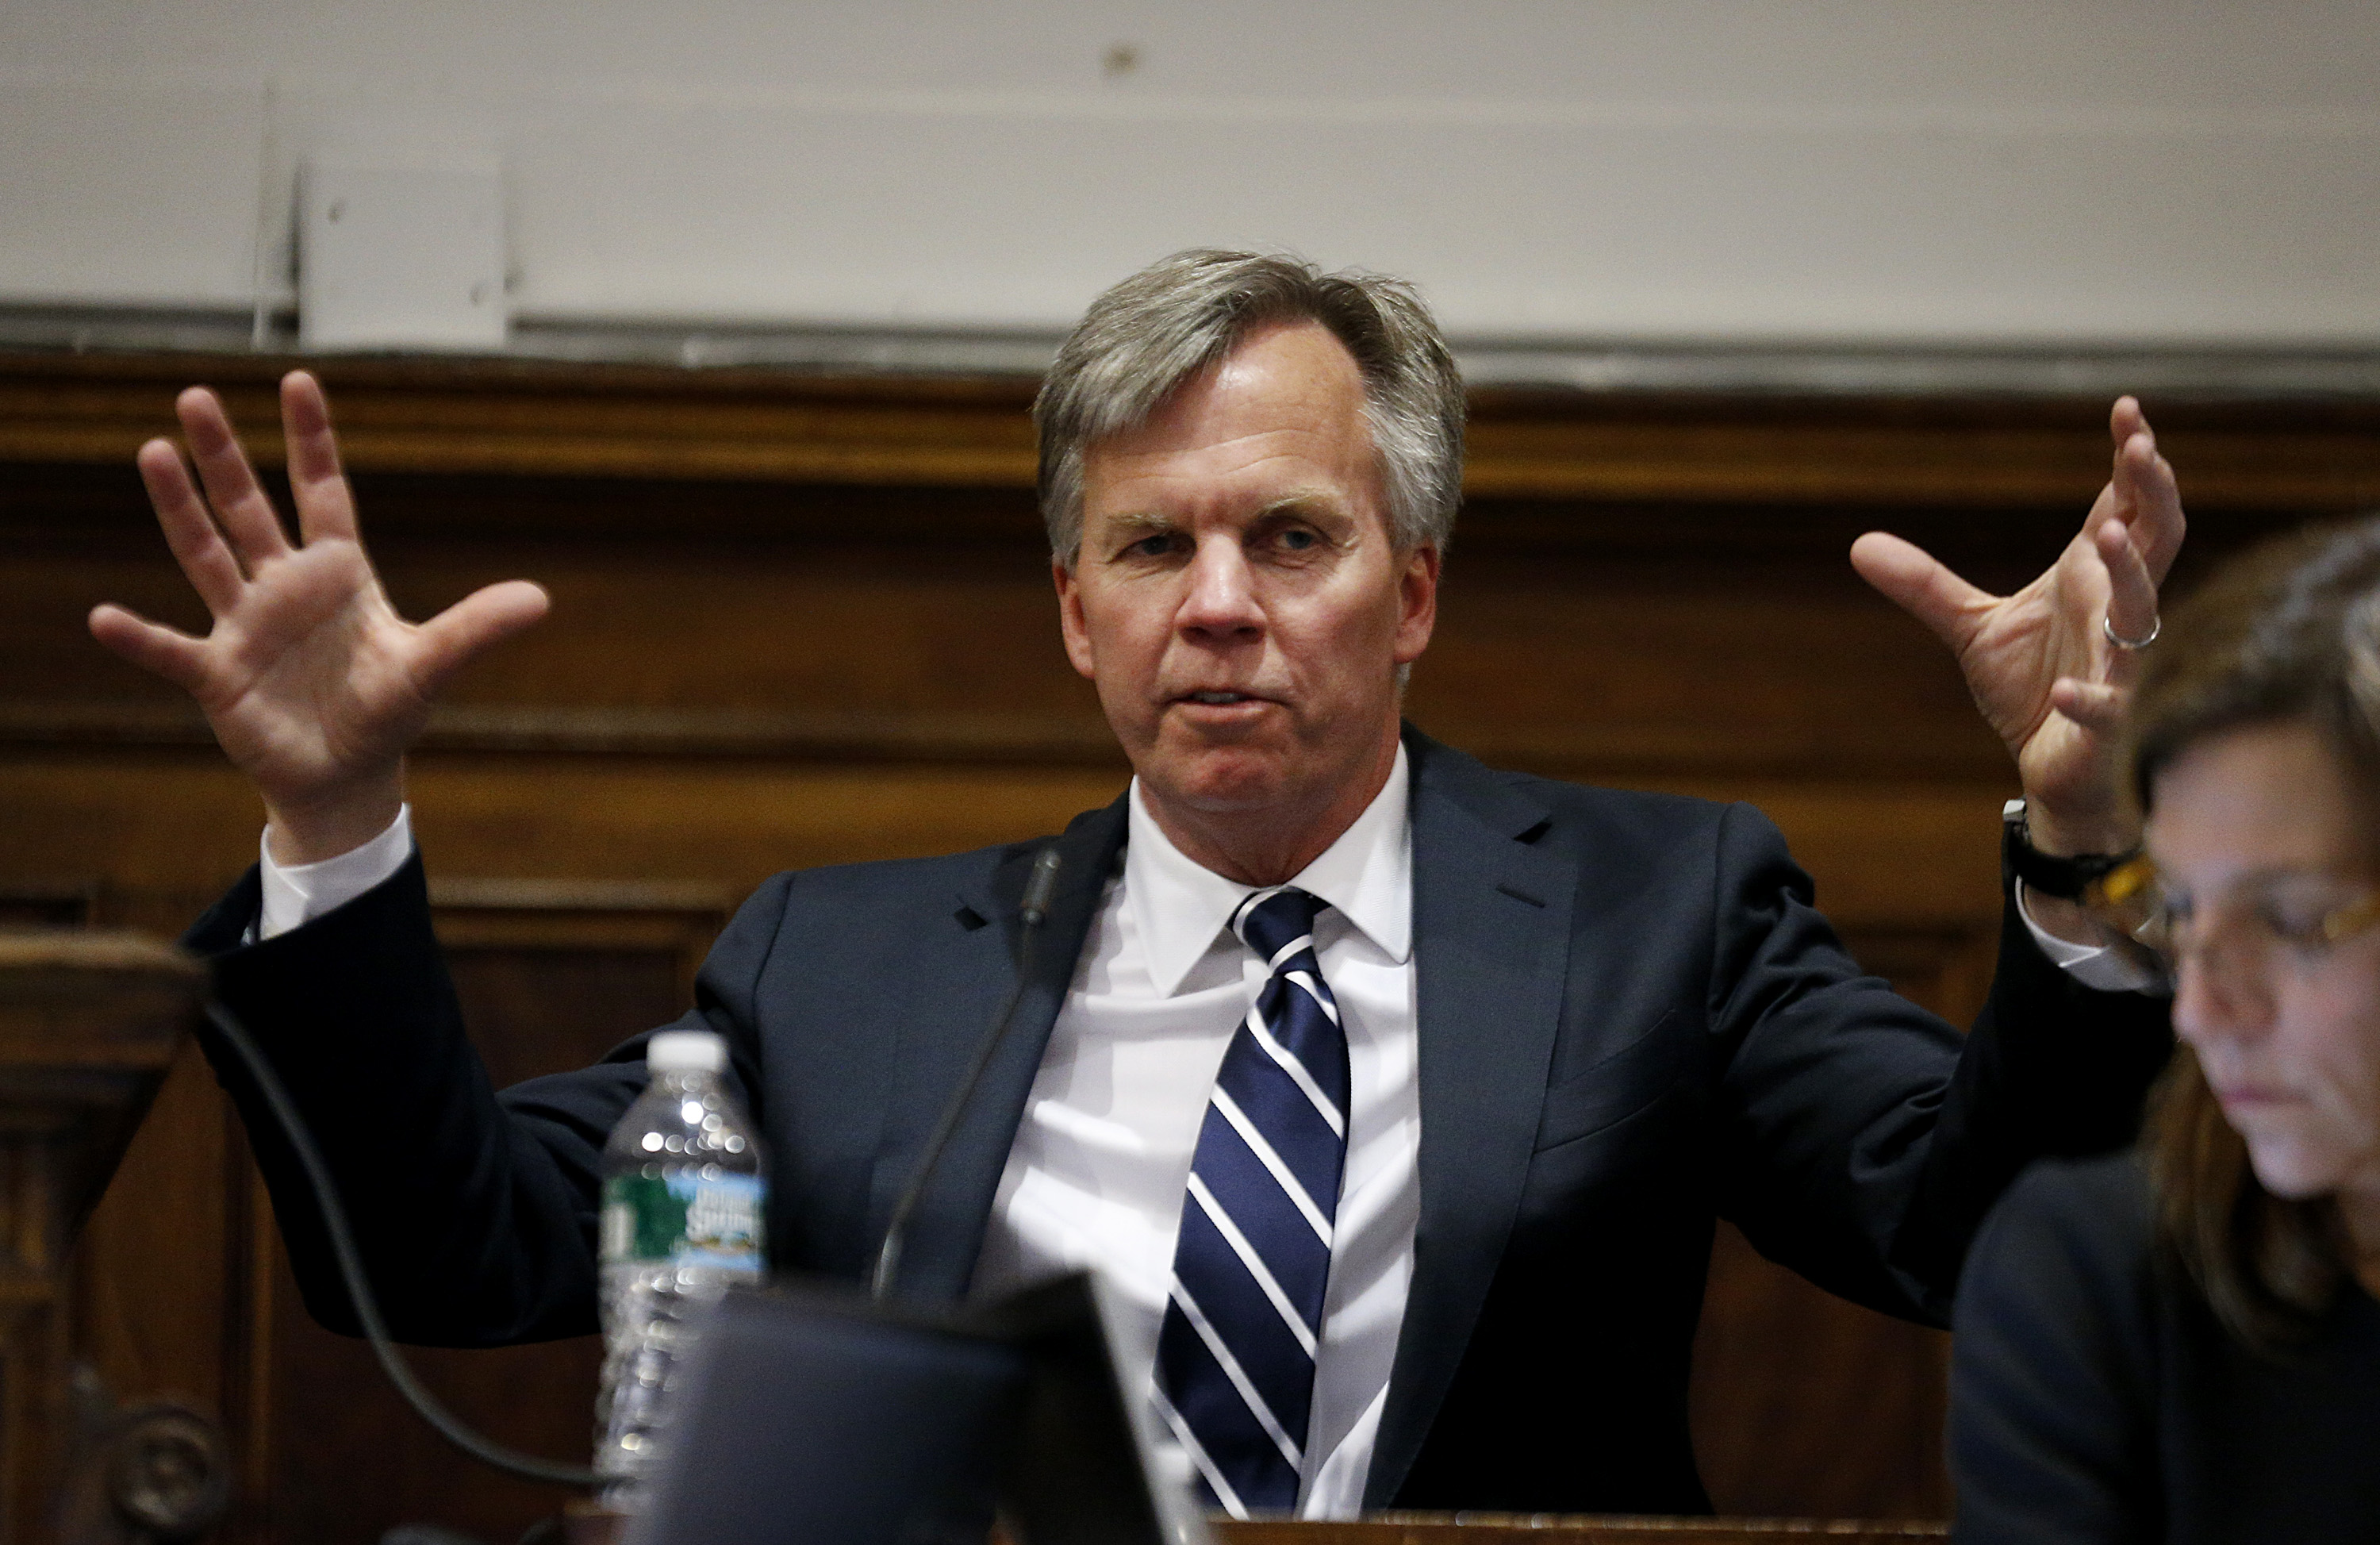 Ron Johnson, then CEO of JC Penney, testifying in 2013 in an unrelated case.